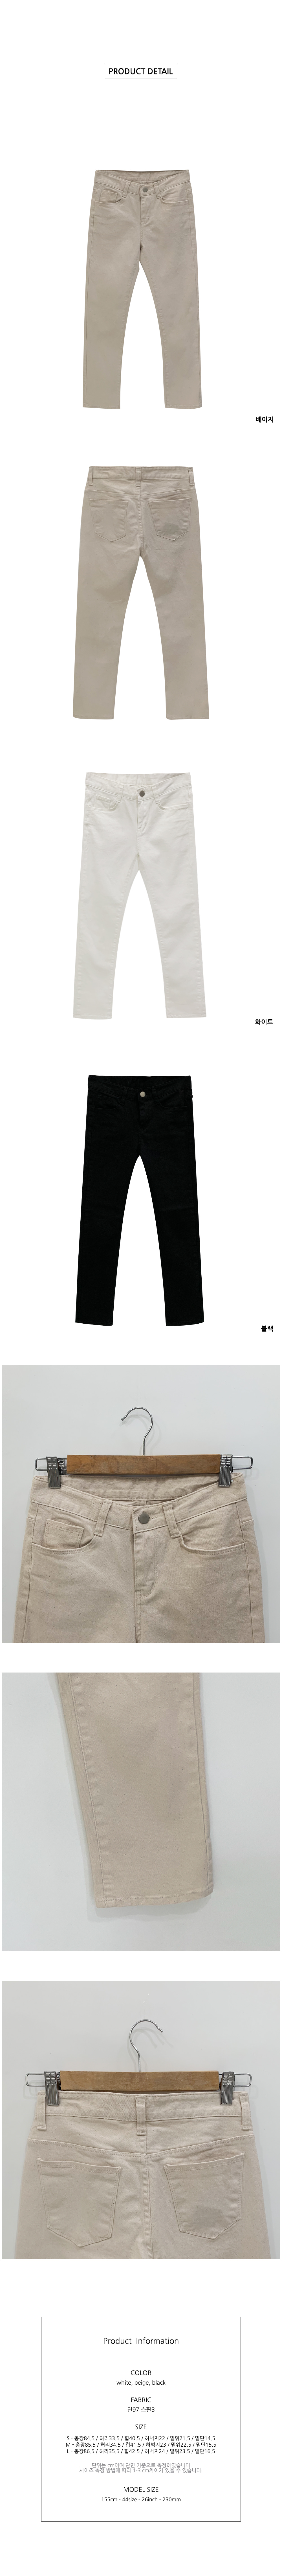 Daily Slim Date Cotton Pants P#YW333